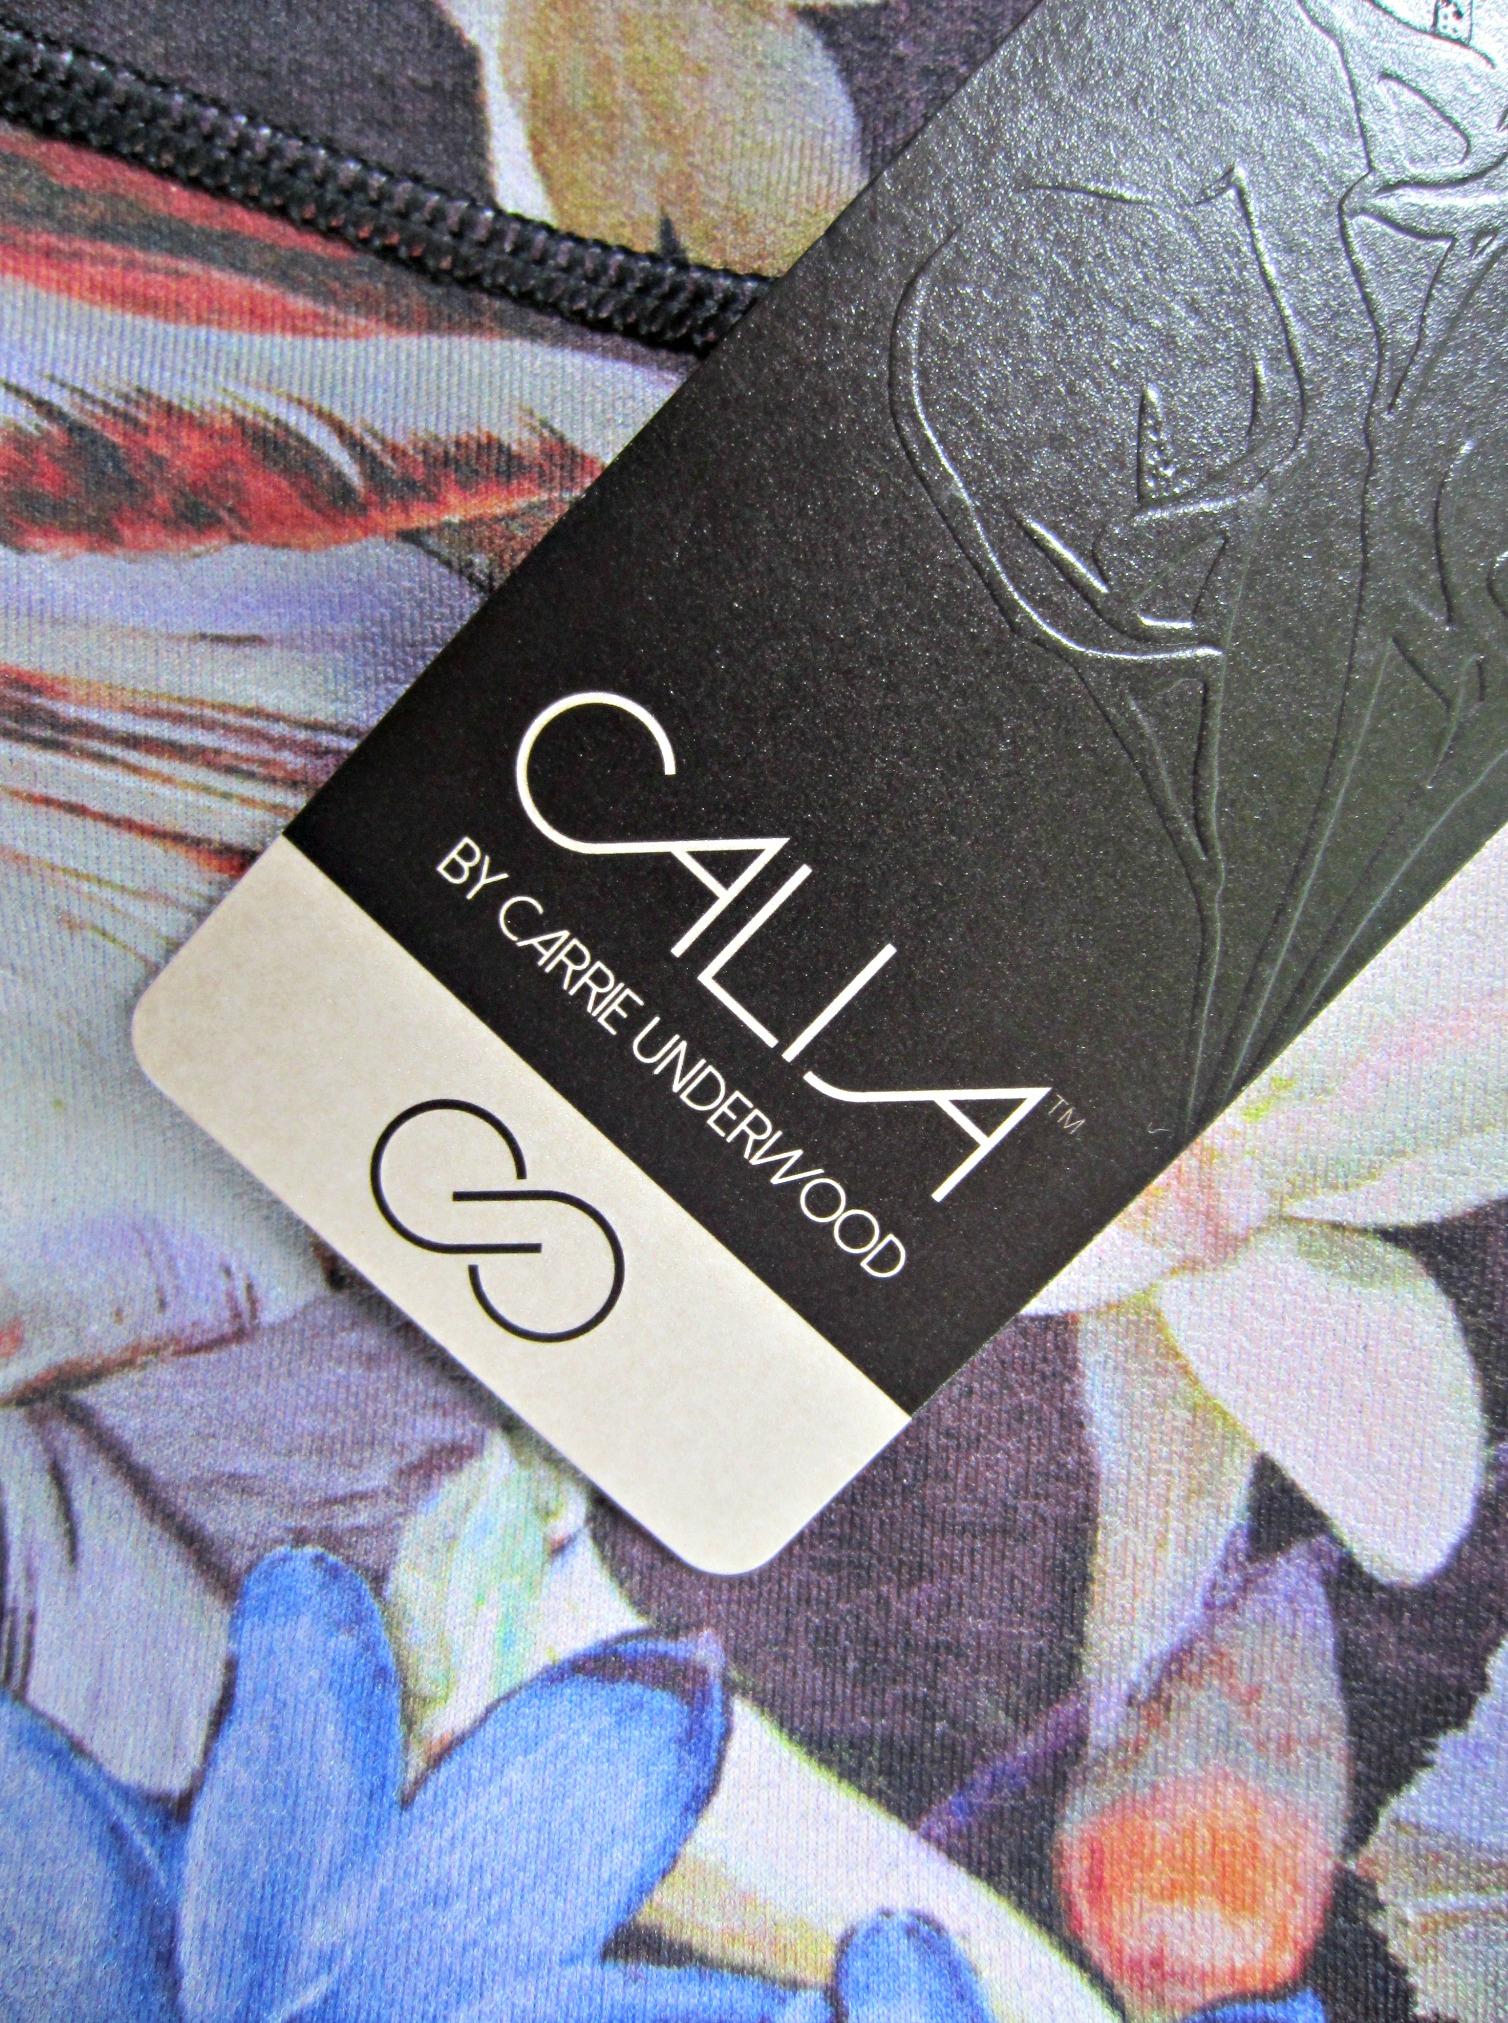 CALIA workout clothing line